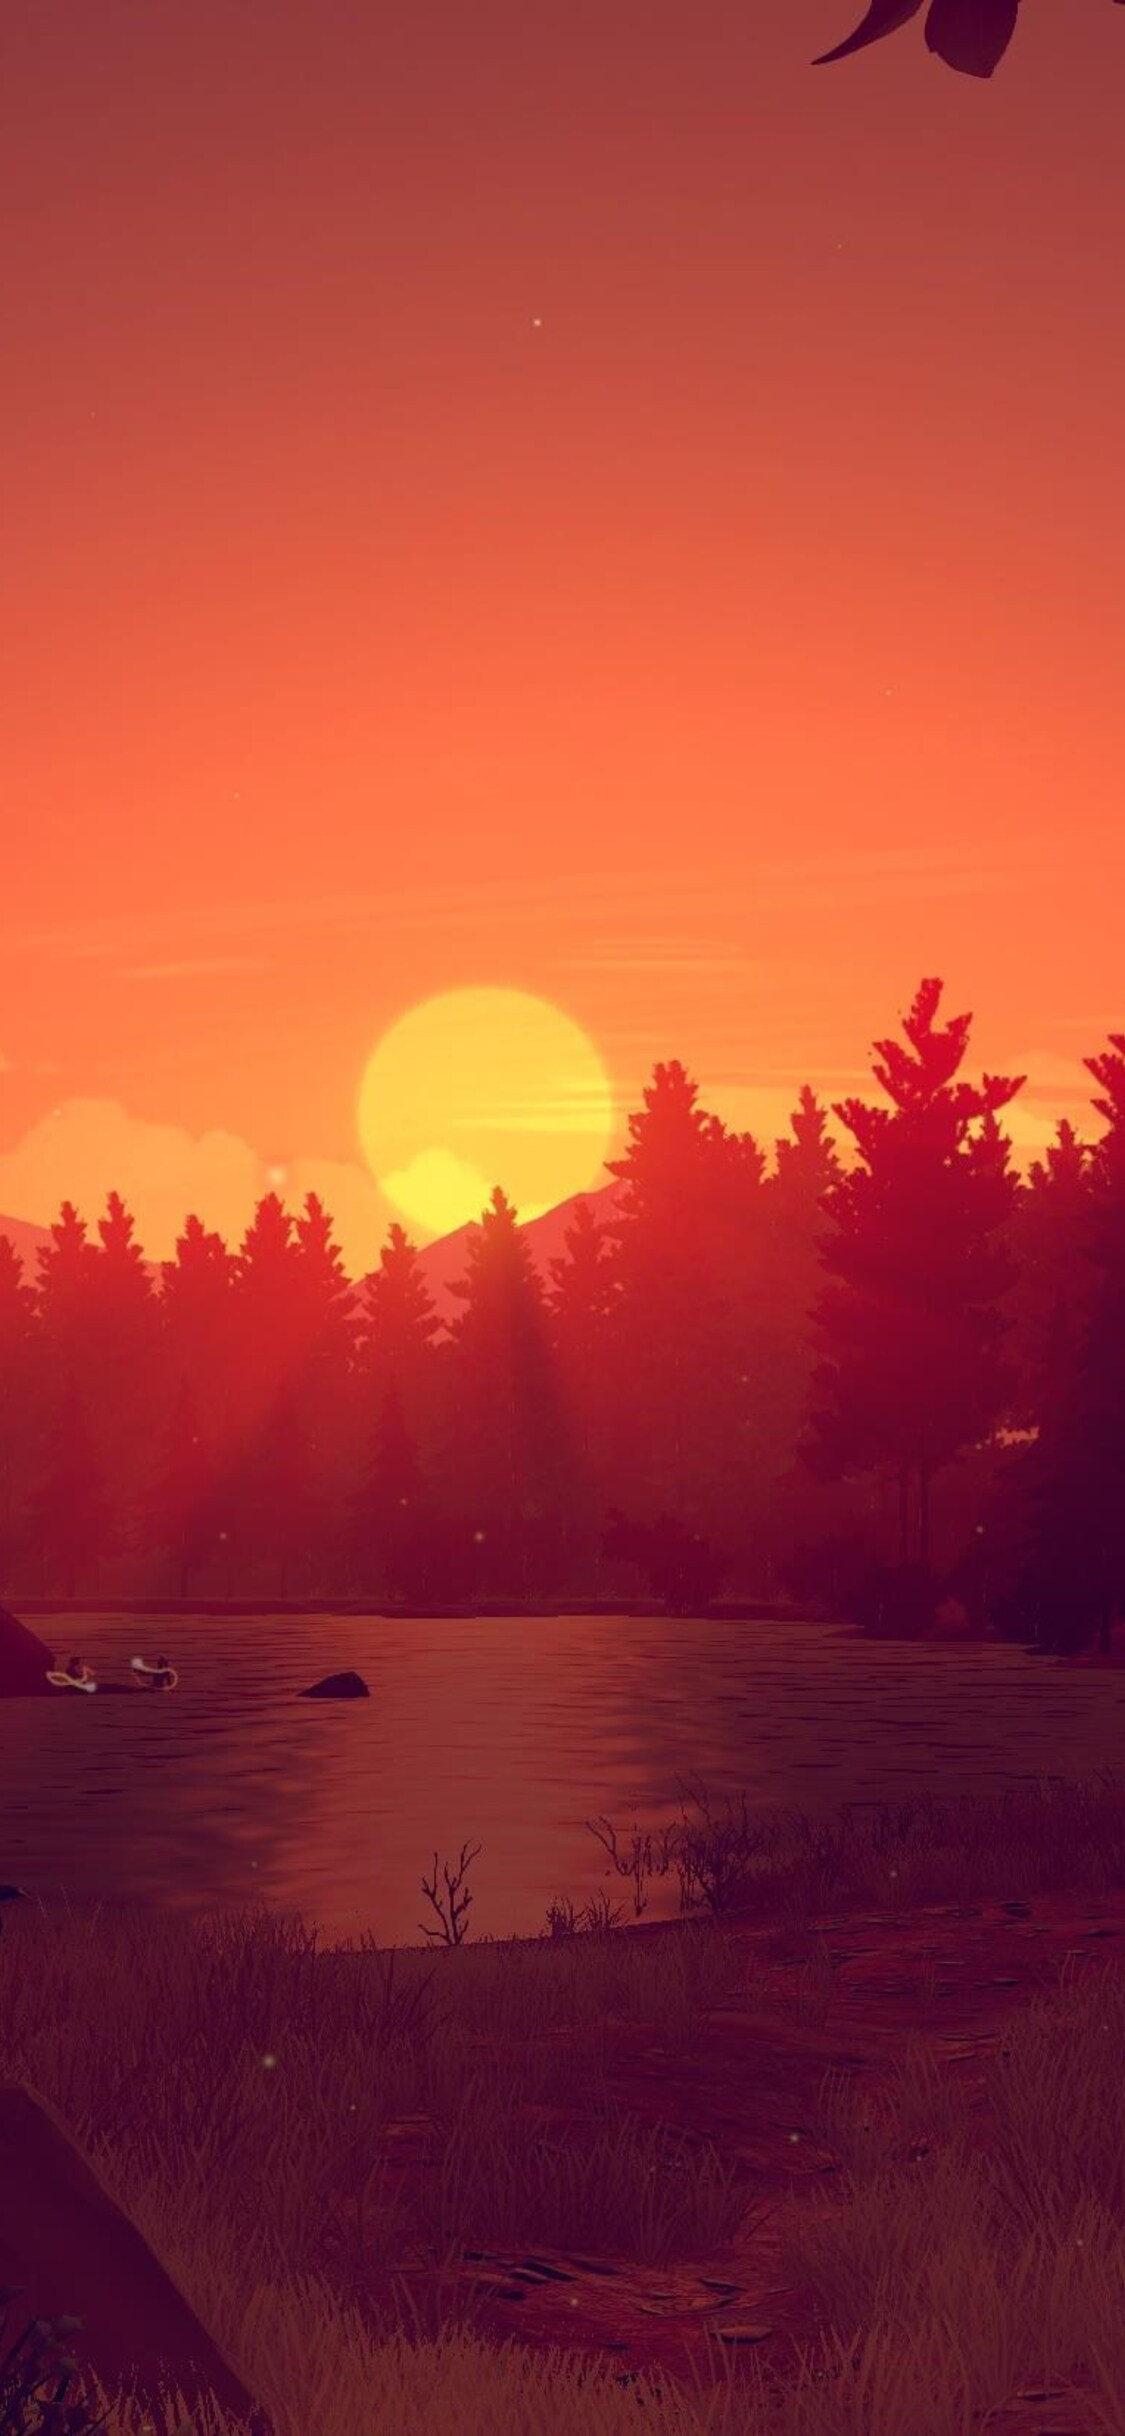 Firewatch Game Sunset (Iphone XS,Iphone 10,Iphone X)